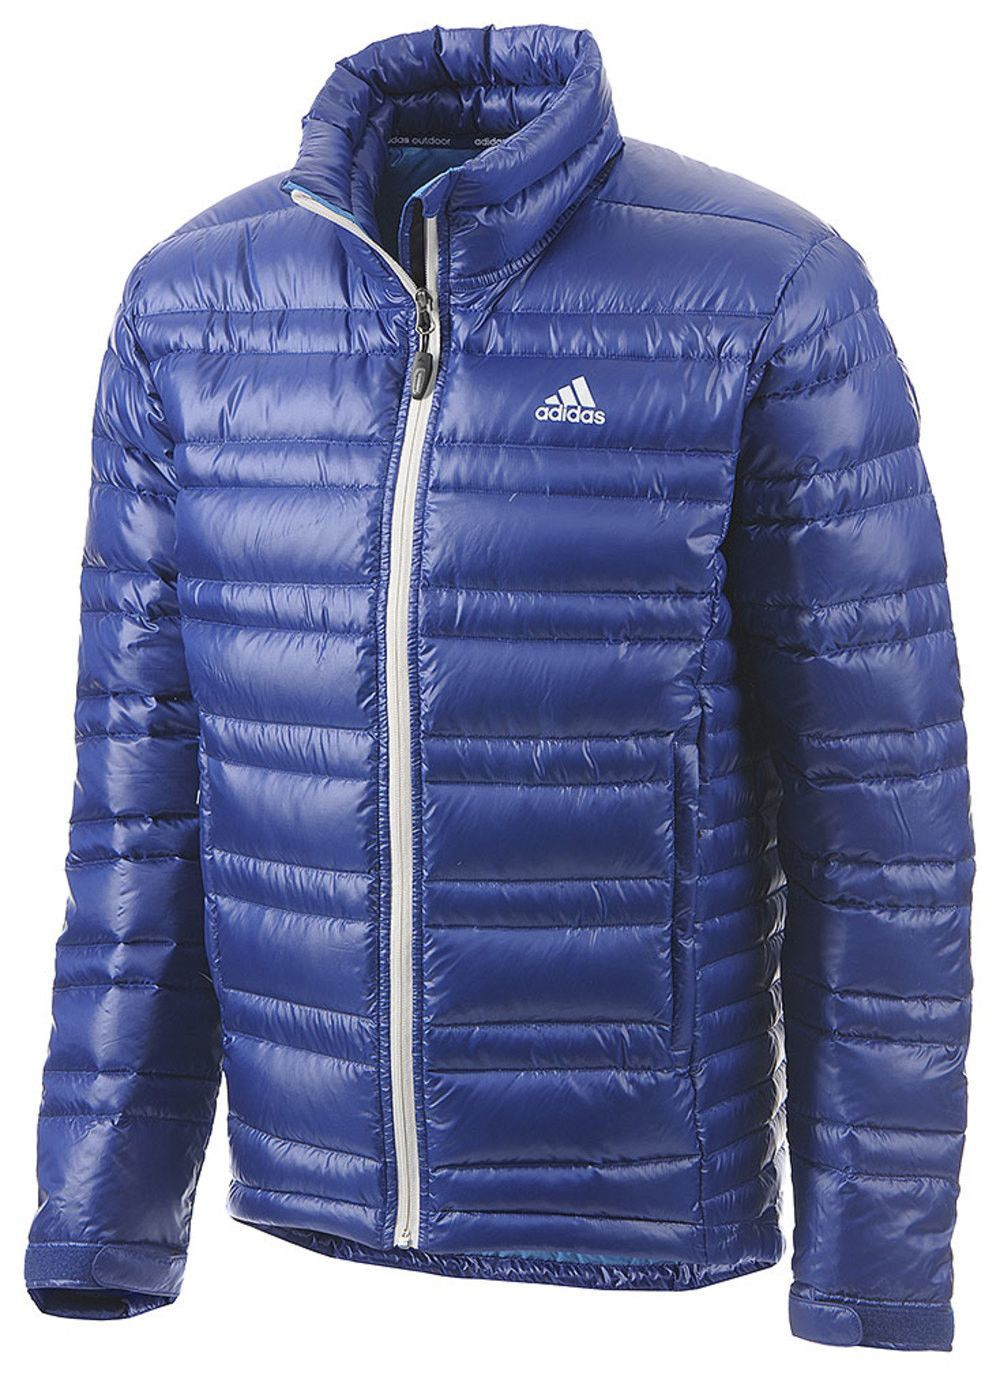 HT Light Down Jacket by adidas Sport Performance Mens